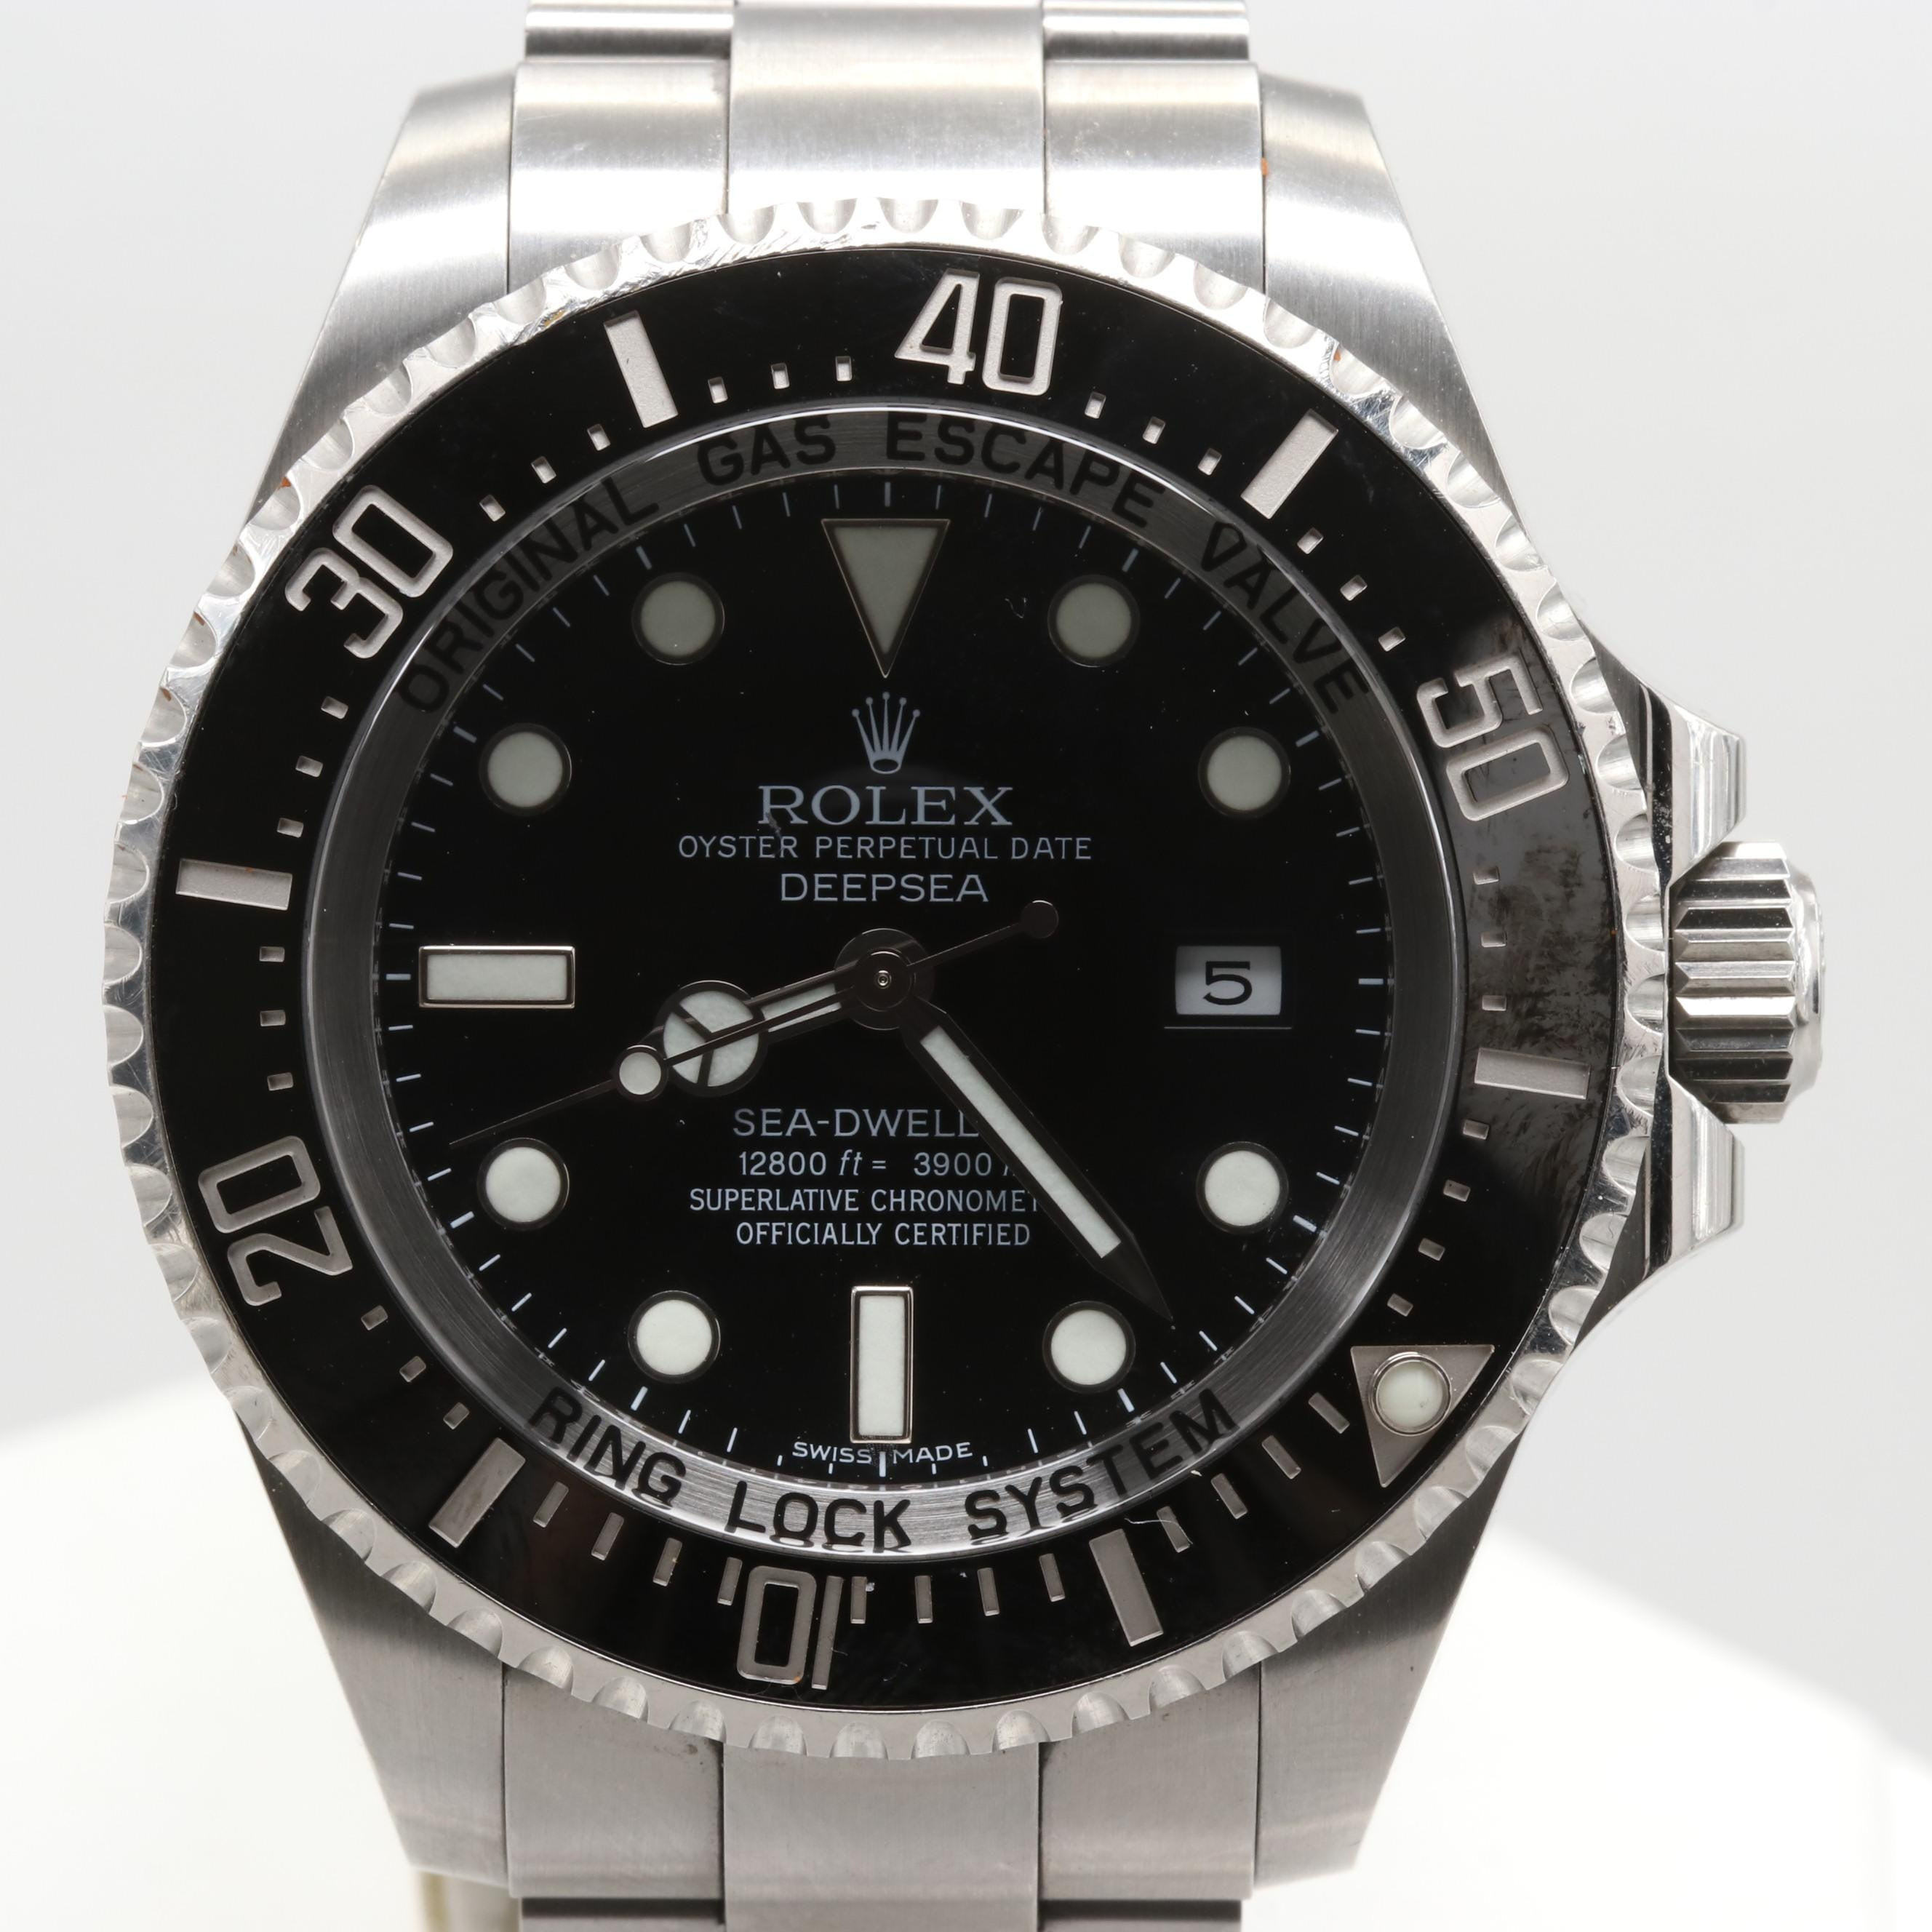 Rolex Stainless Steel Sea-Dweller Deep Sea Automatic Wristwatch